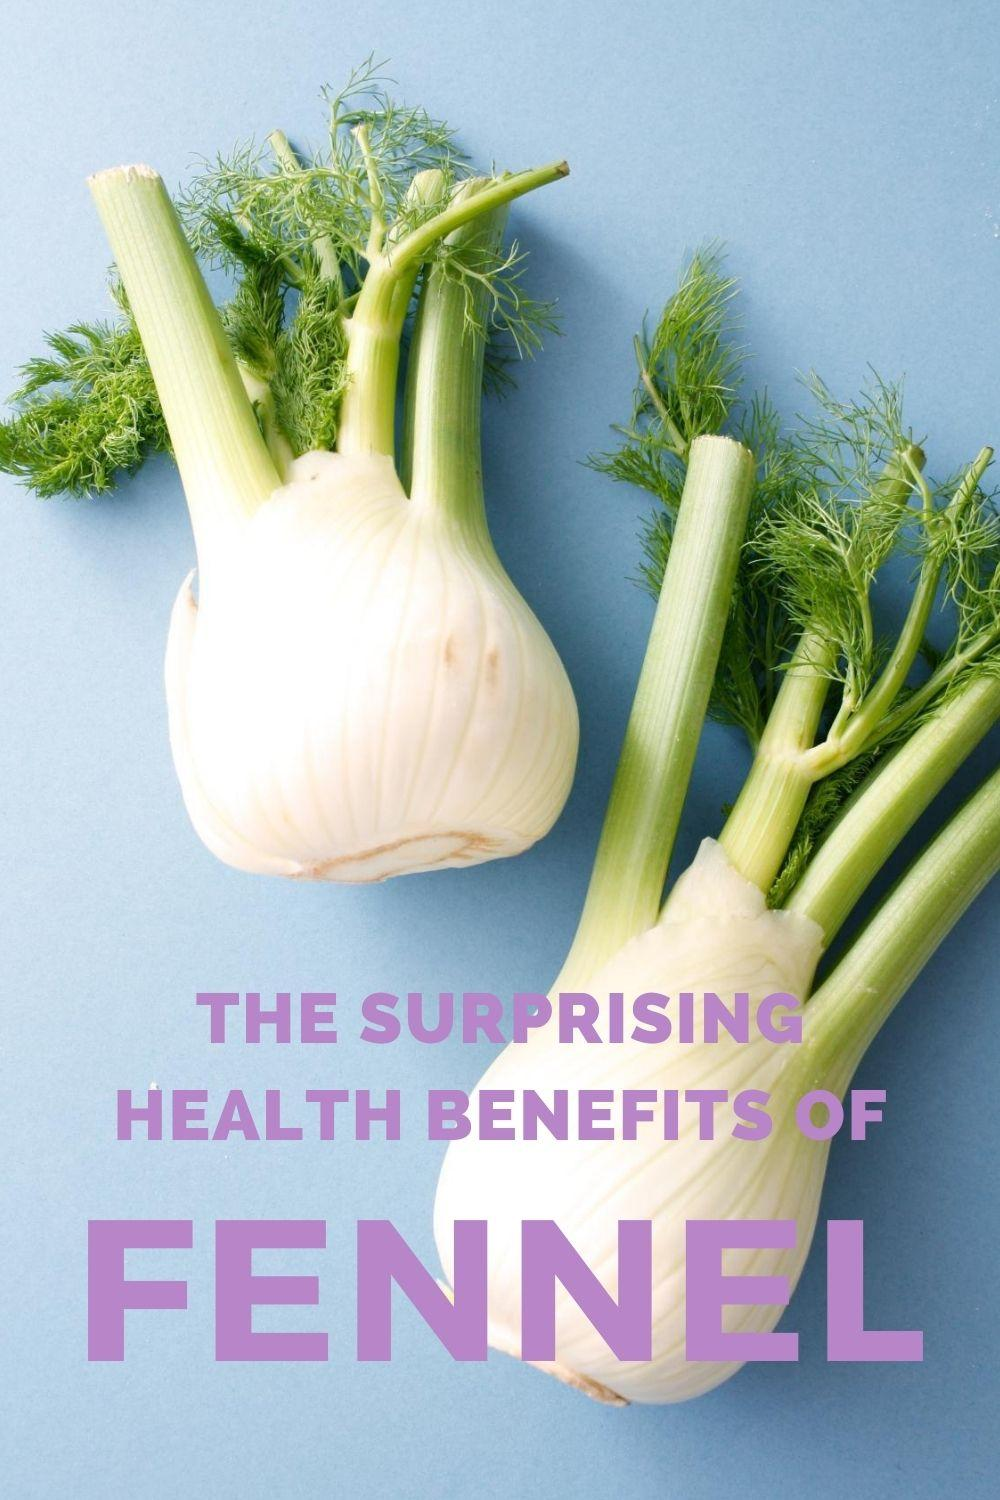 the benefits of fennel graphic